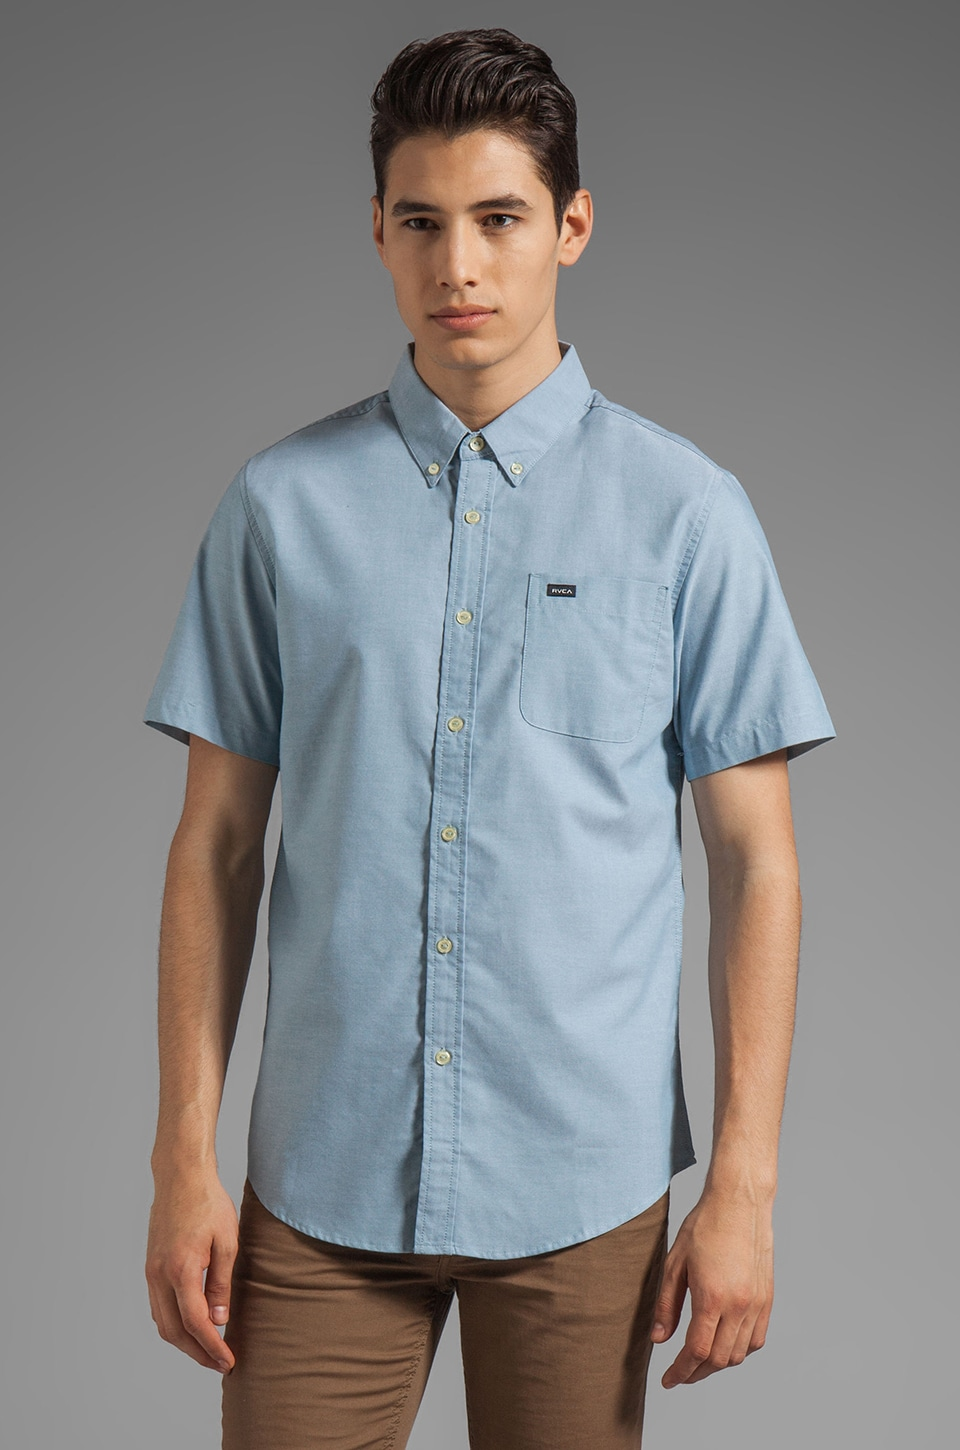 RVCA That'll Do Oxford Short Sleeve en Aegean Blue